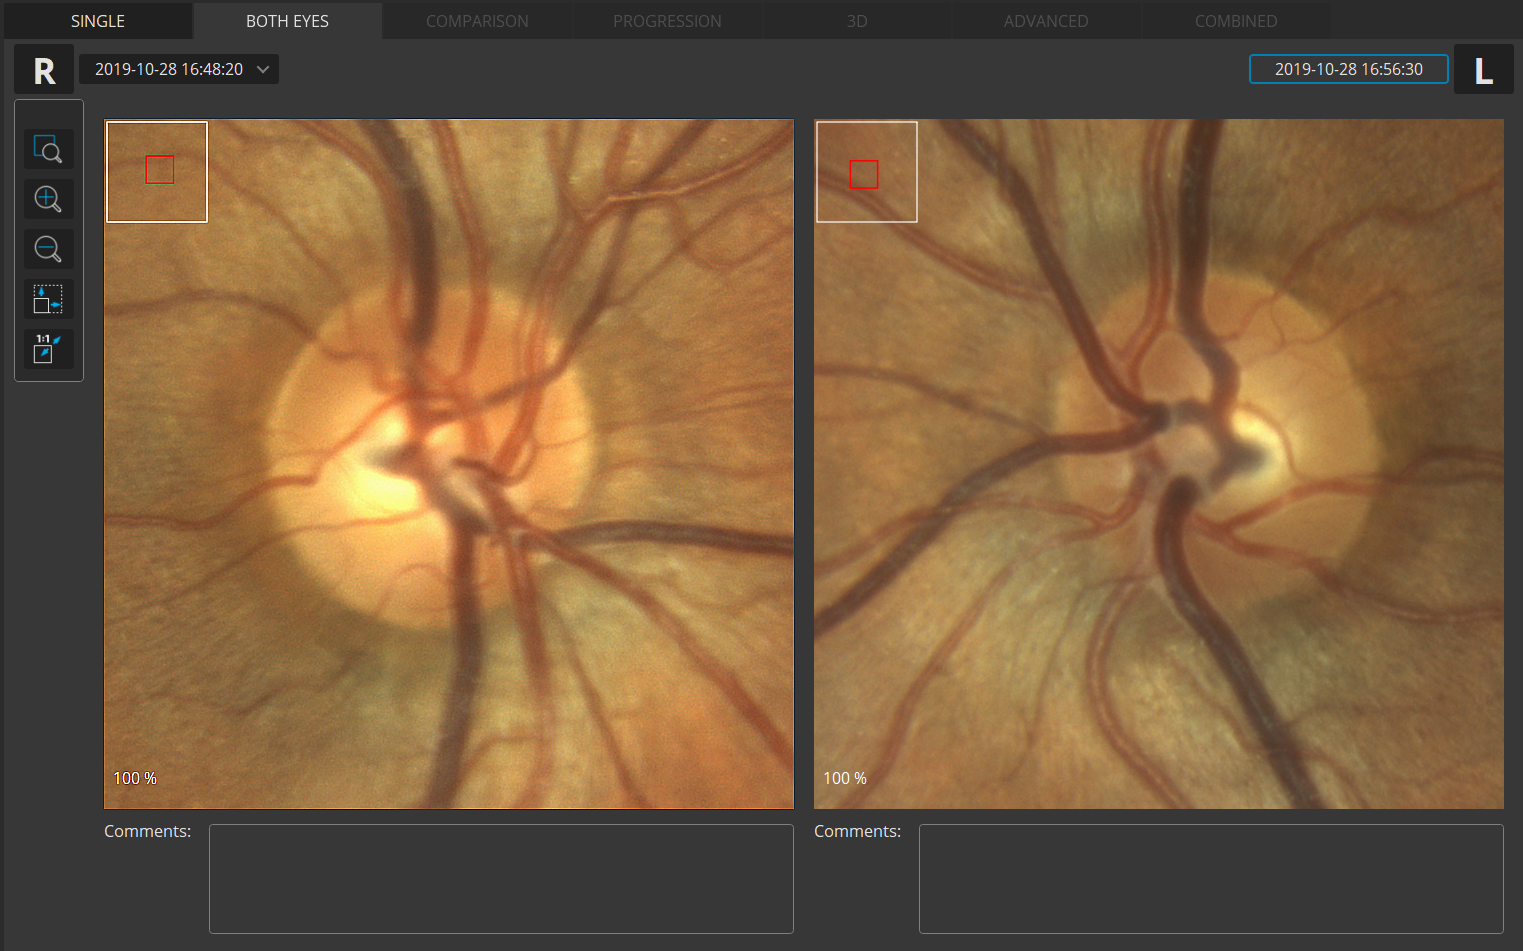 Both eyes Fundus Photo view